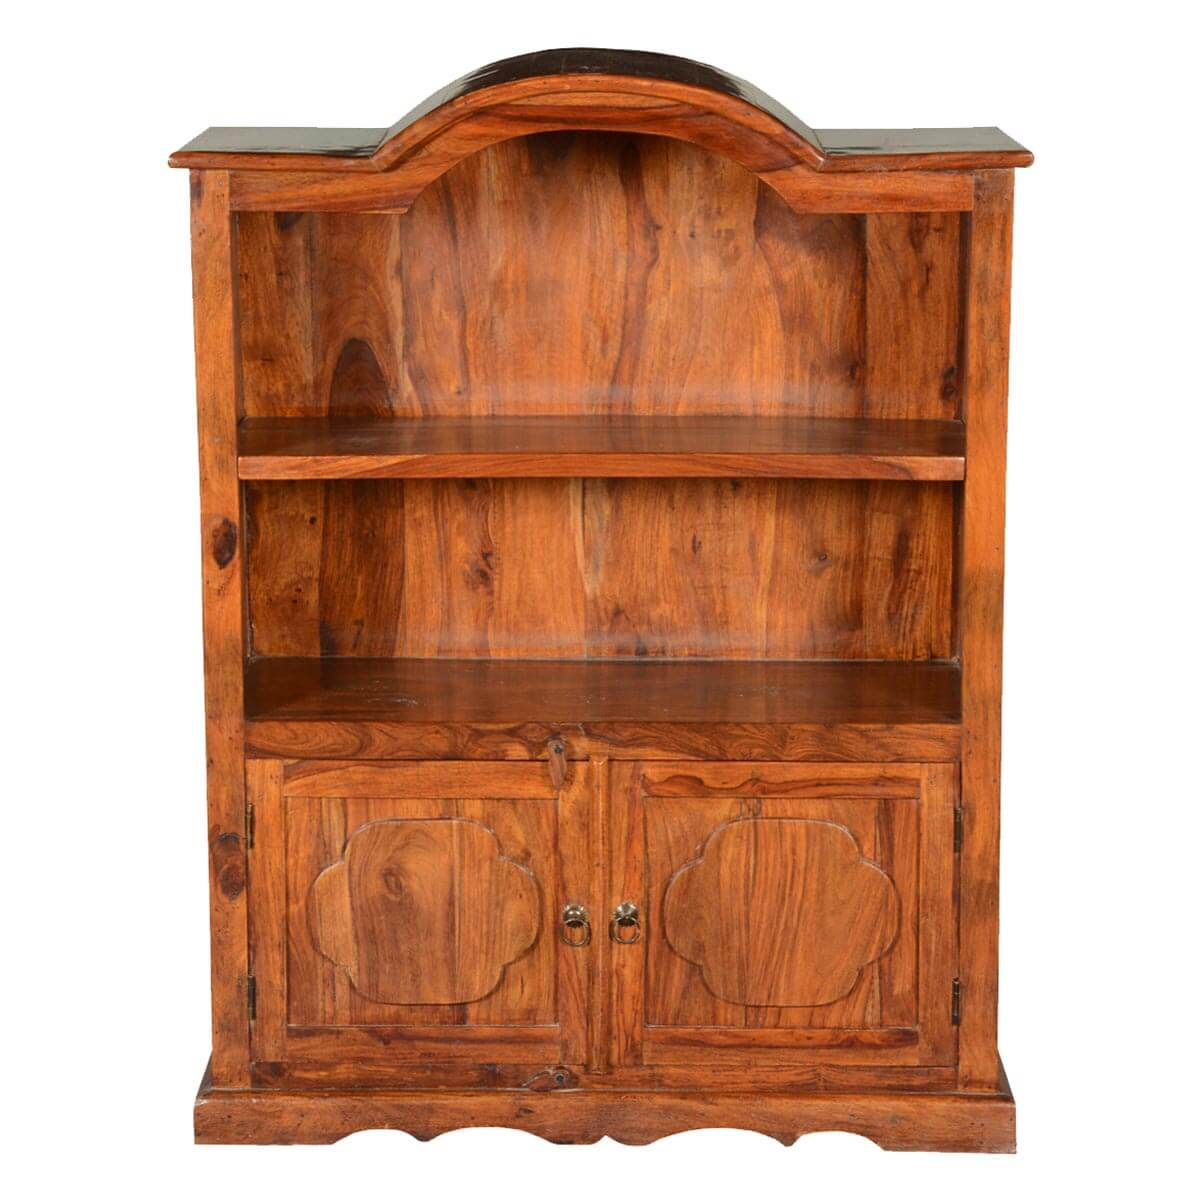 Open Cabinets: Pennsylvania Dutch Solid Wood Open Shelves Display Cabinet